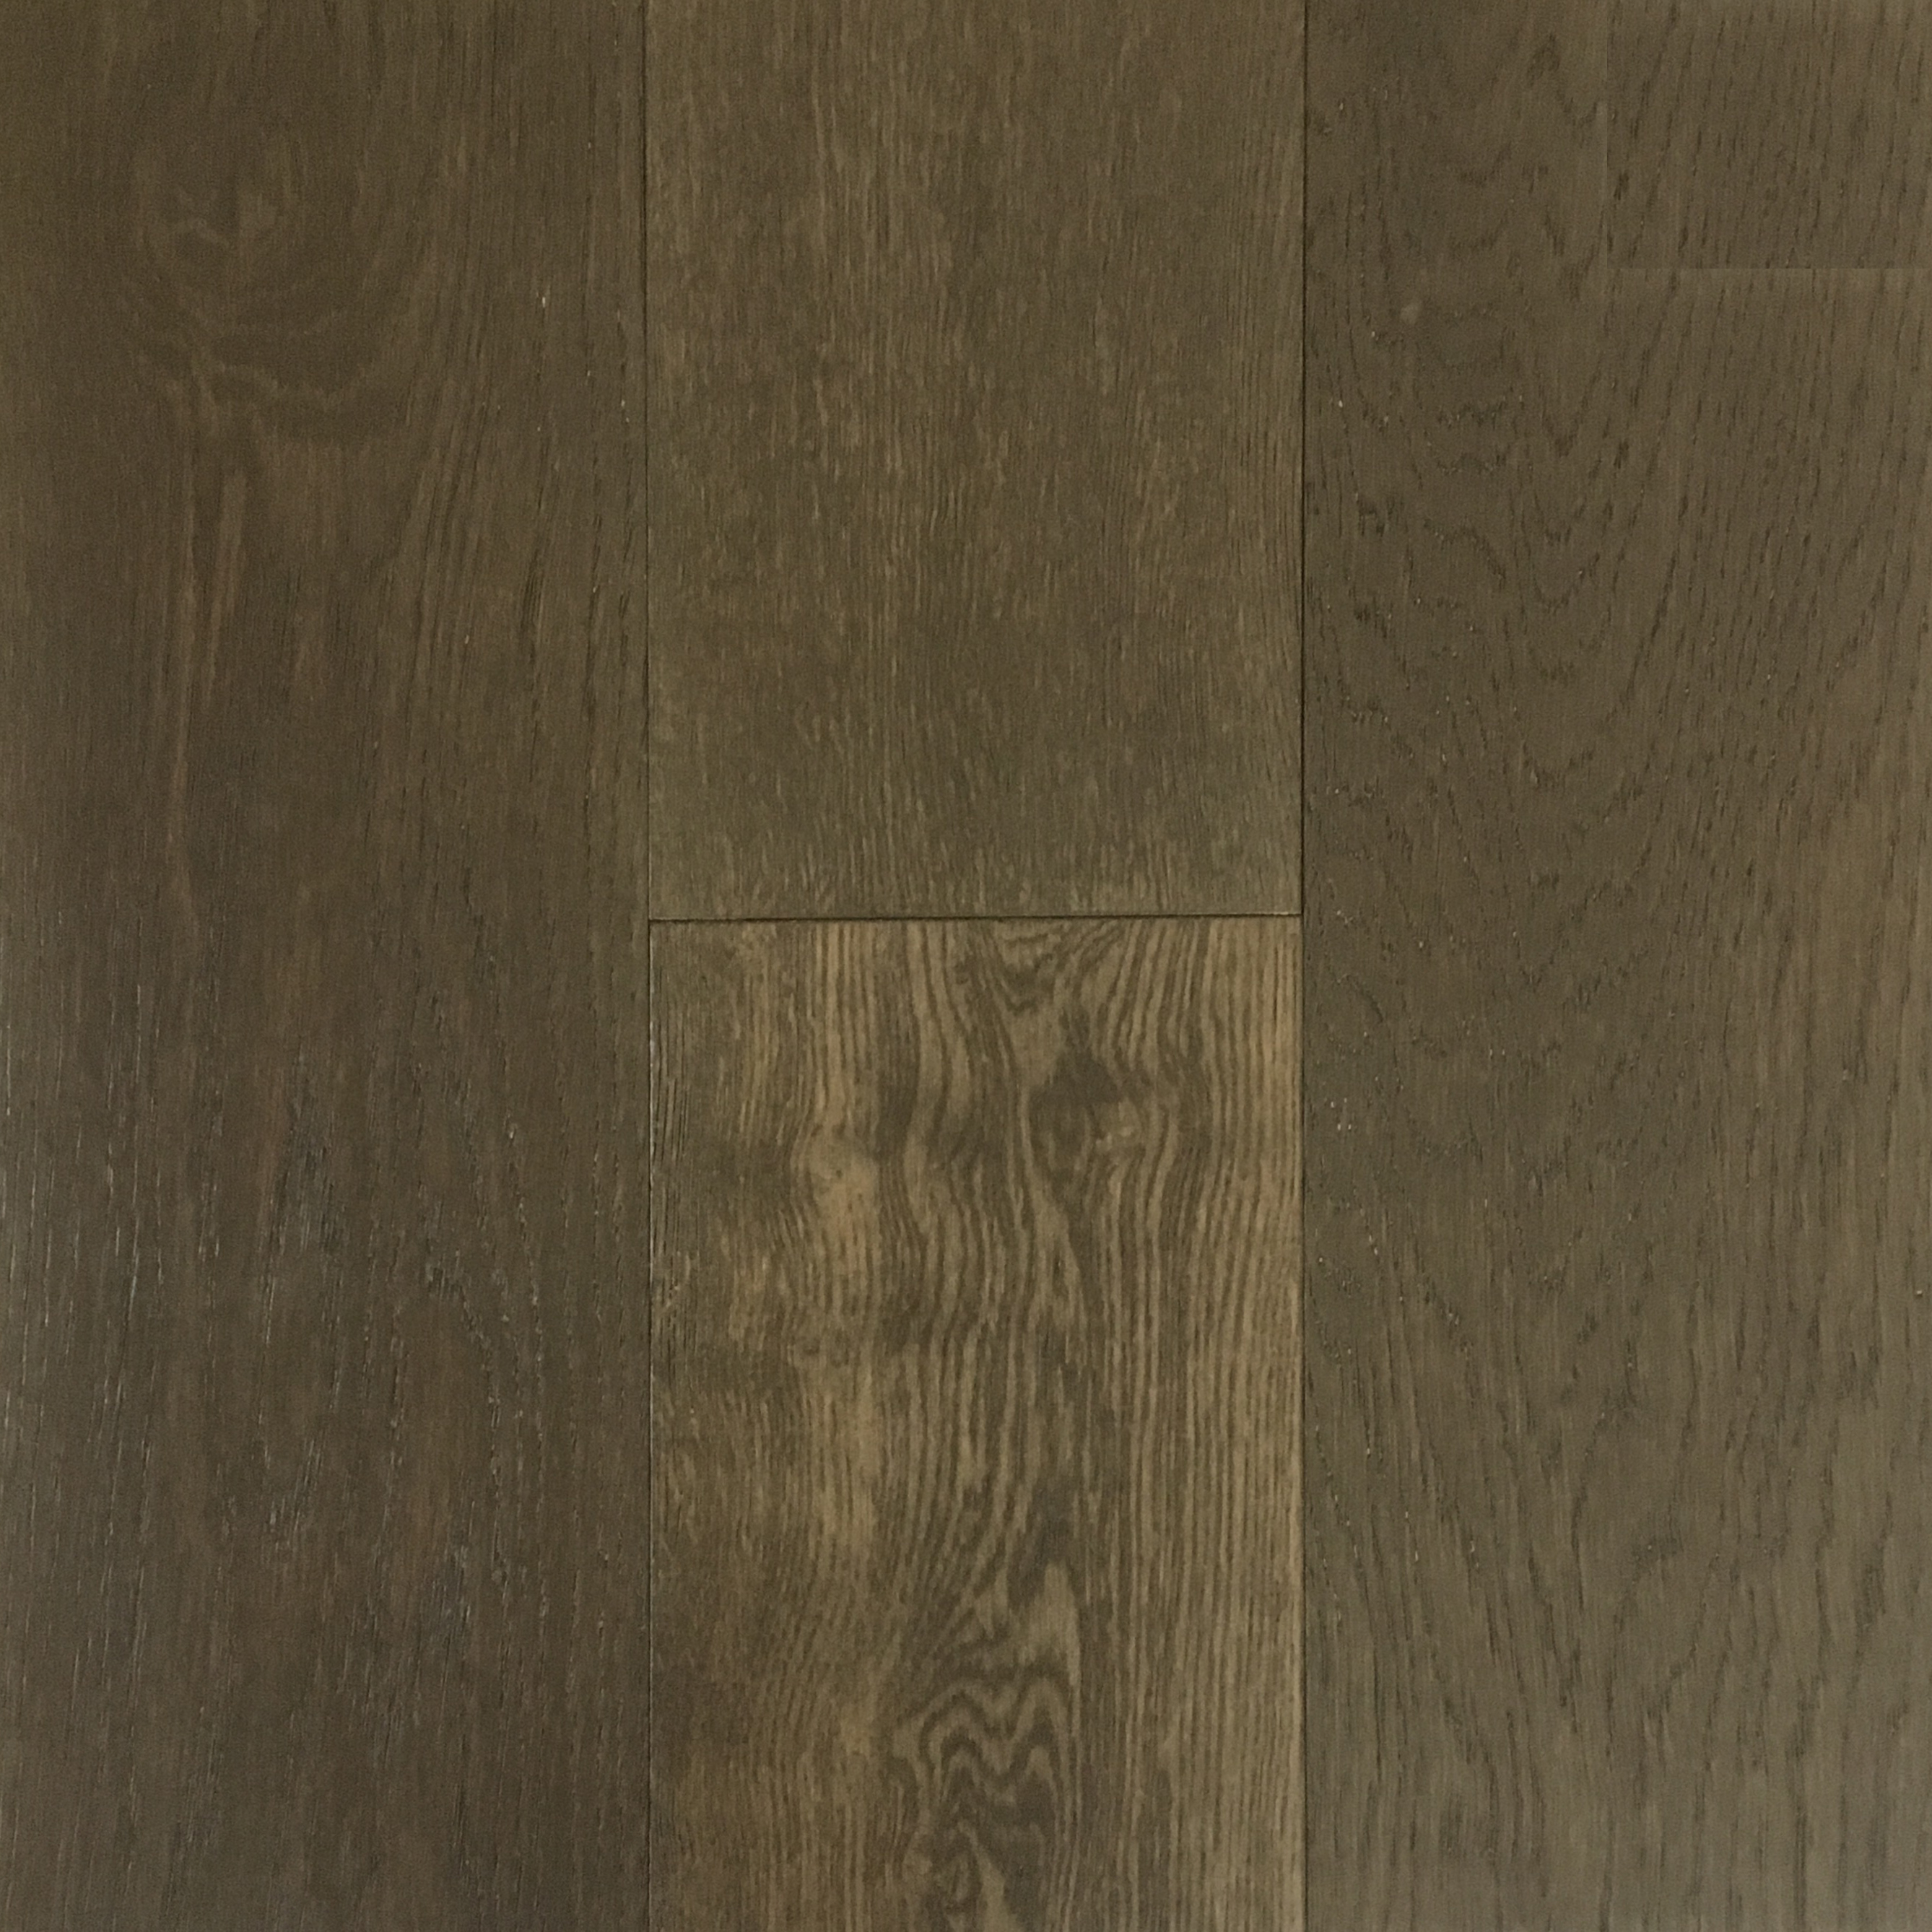 1 engineered 9 european oak wear layer 6mm k009 canyon oak for Engineered wood floor 6mm